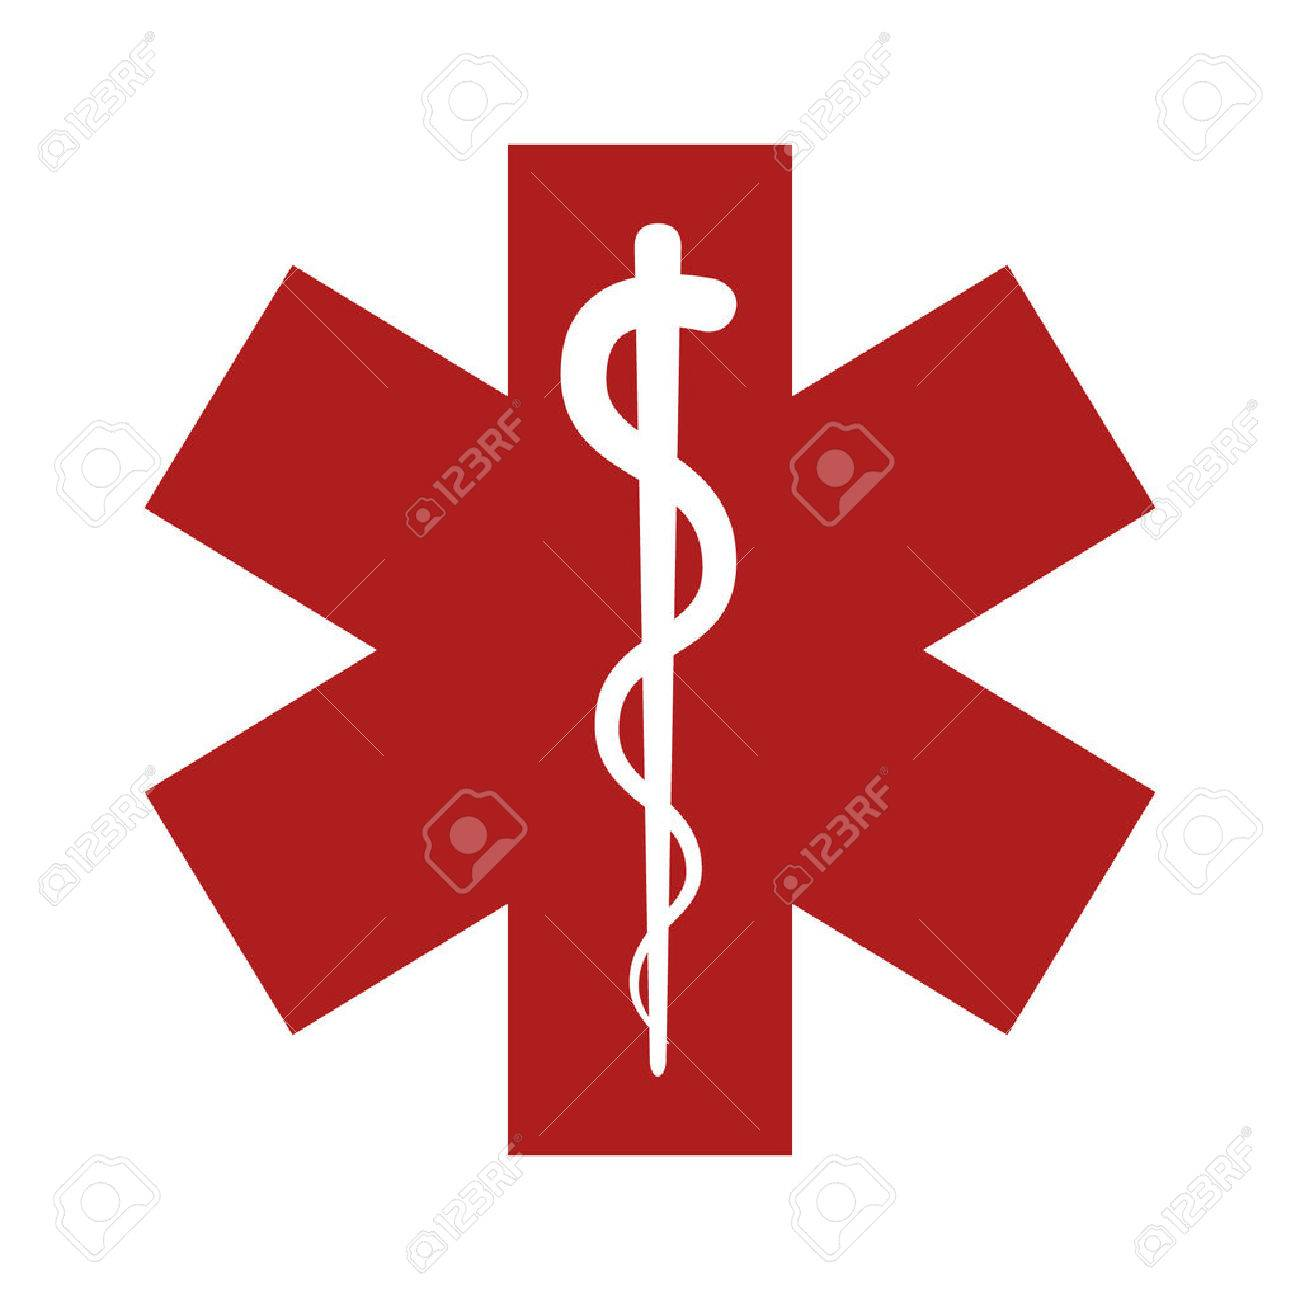 Medical Emergency Flat Icon For App And Website Royalty Free